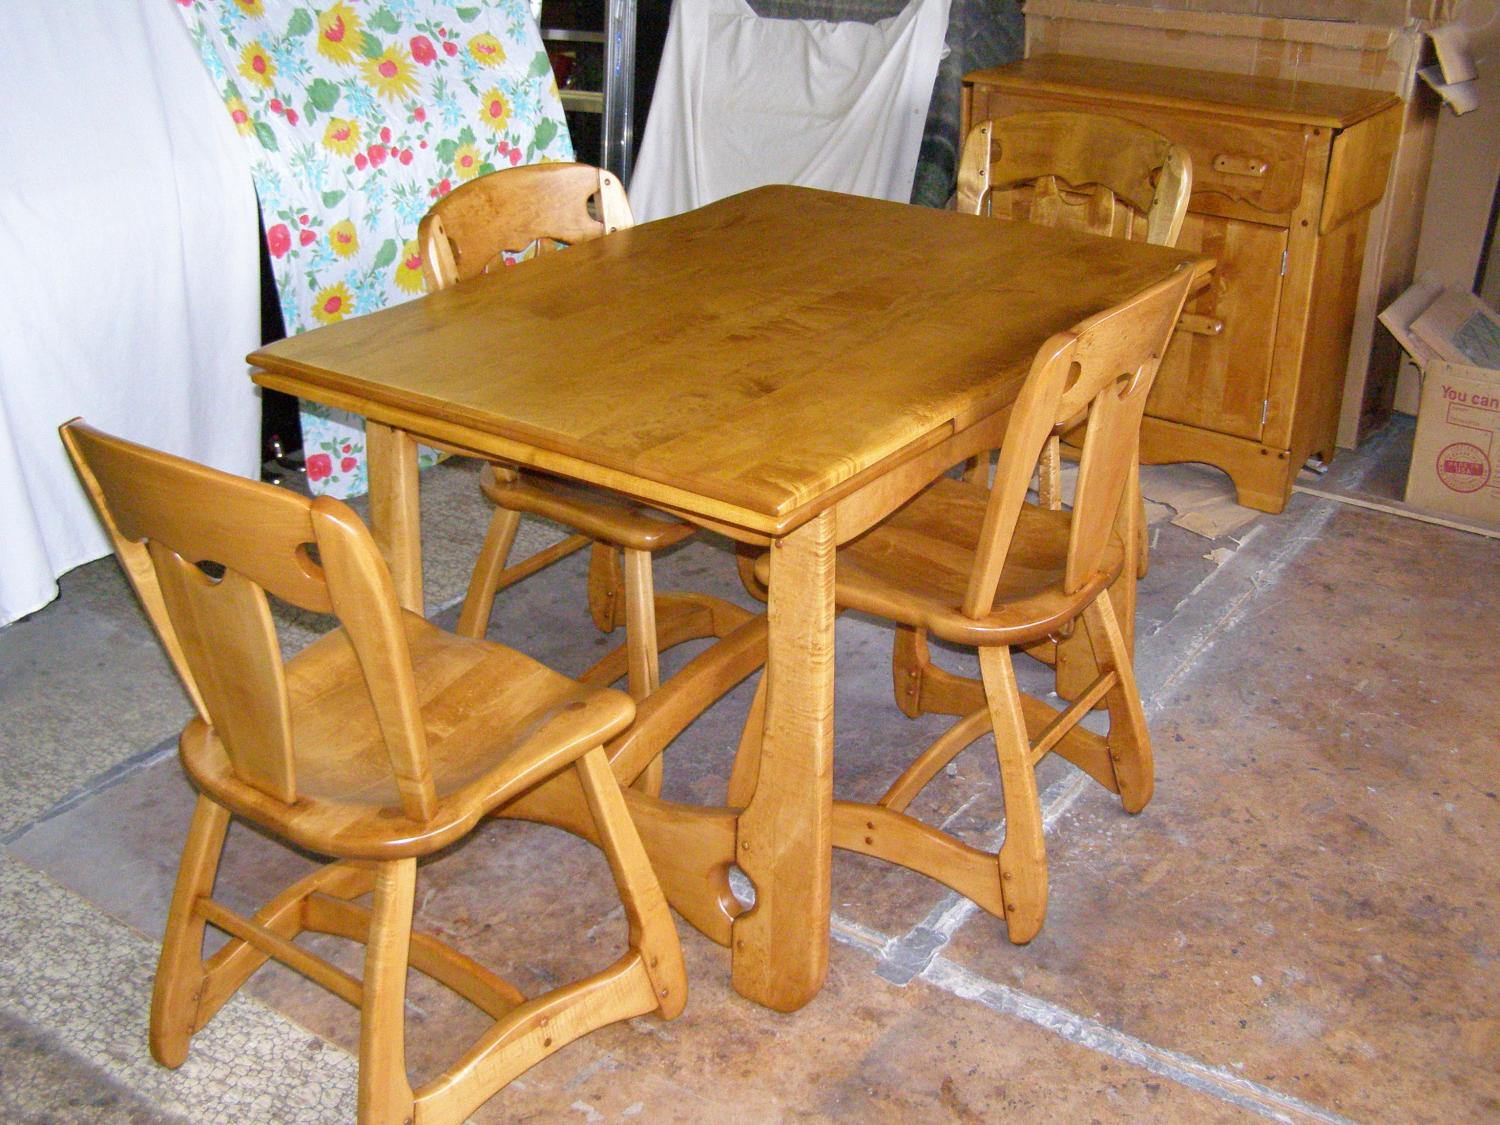 Ralph Colby U0026 Son Furniture Refinishing / Repair Of Oregon   Ralph ...